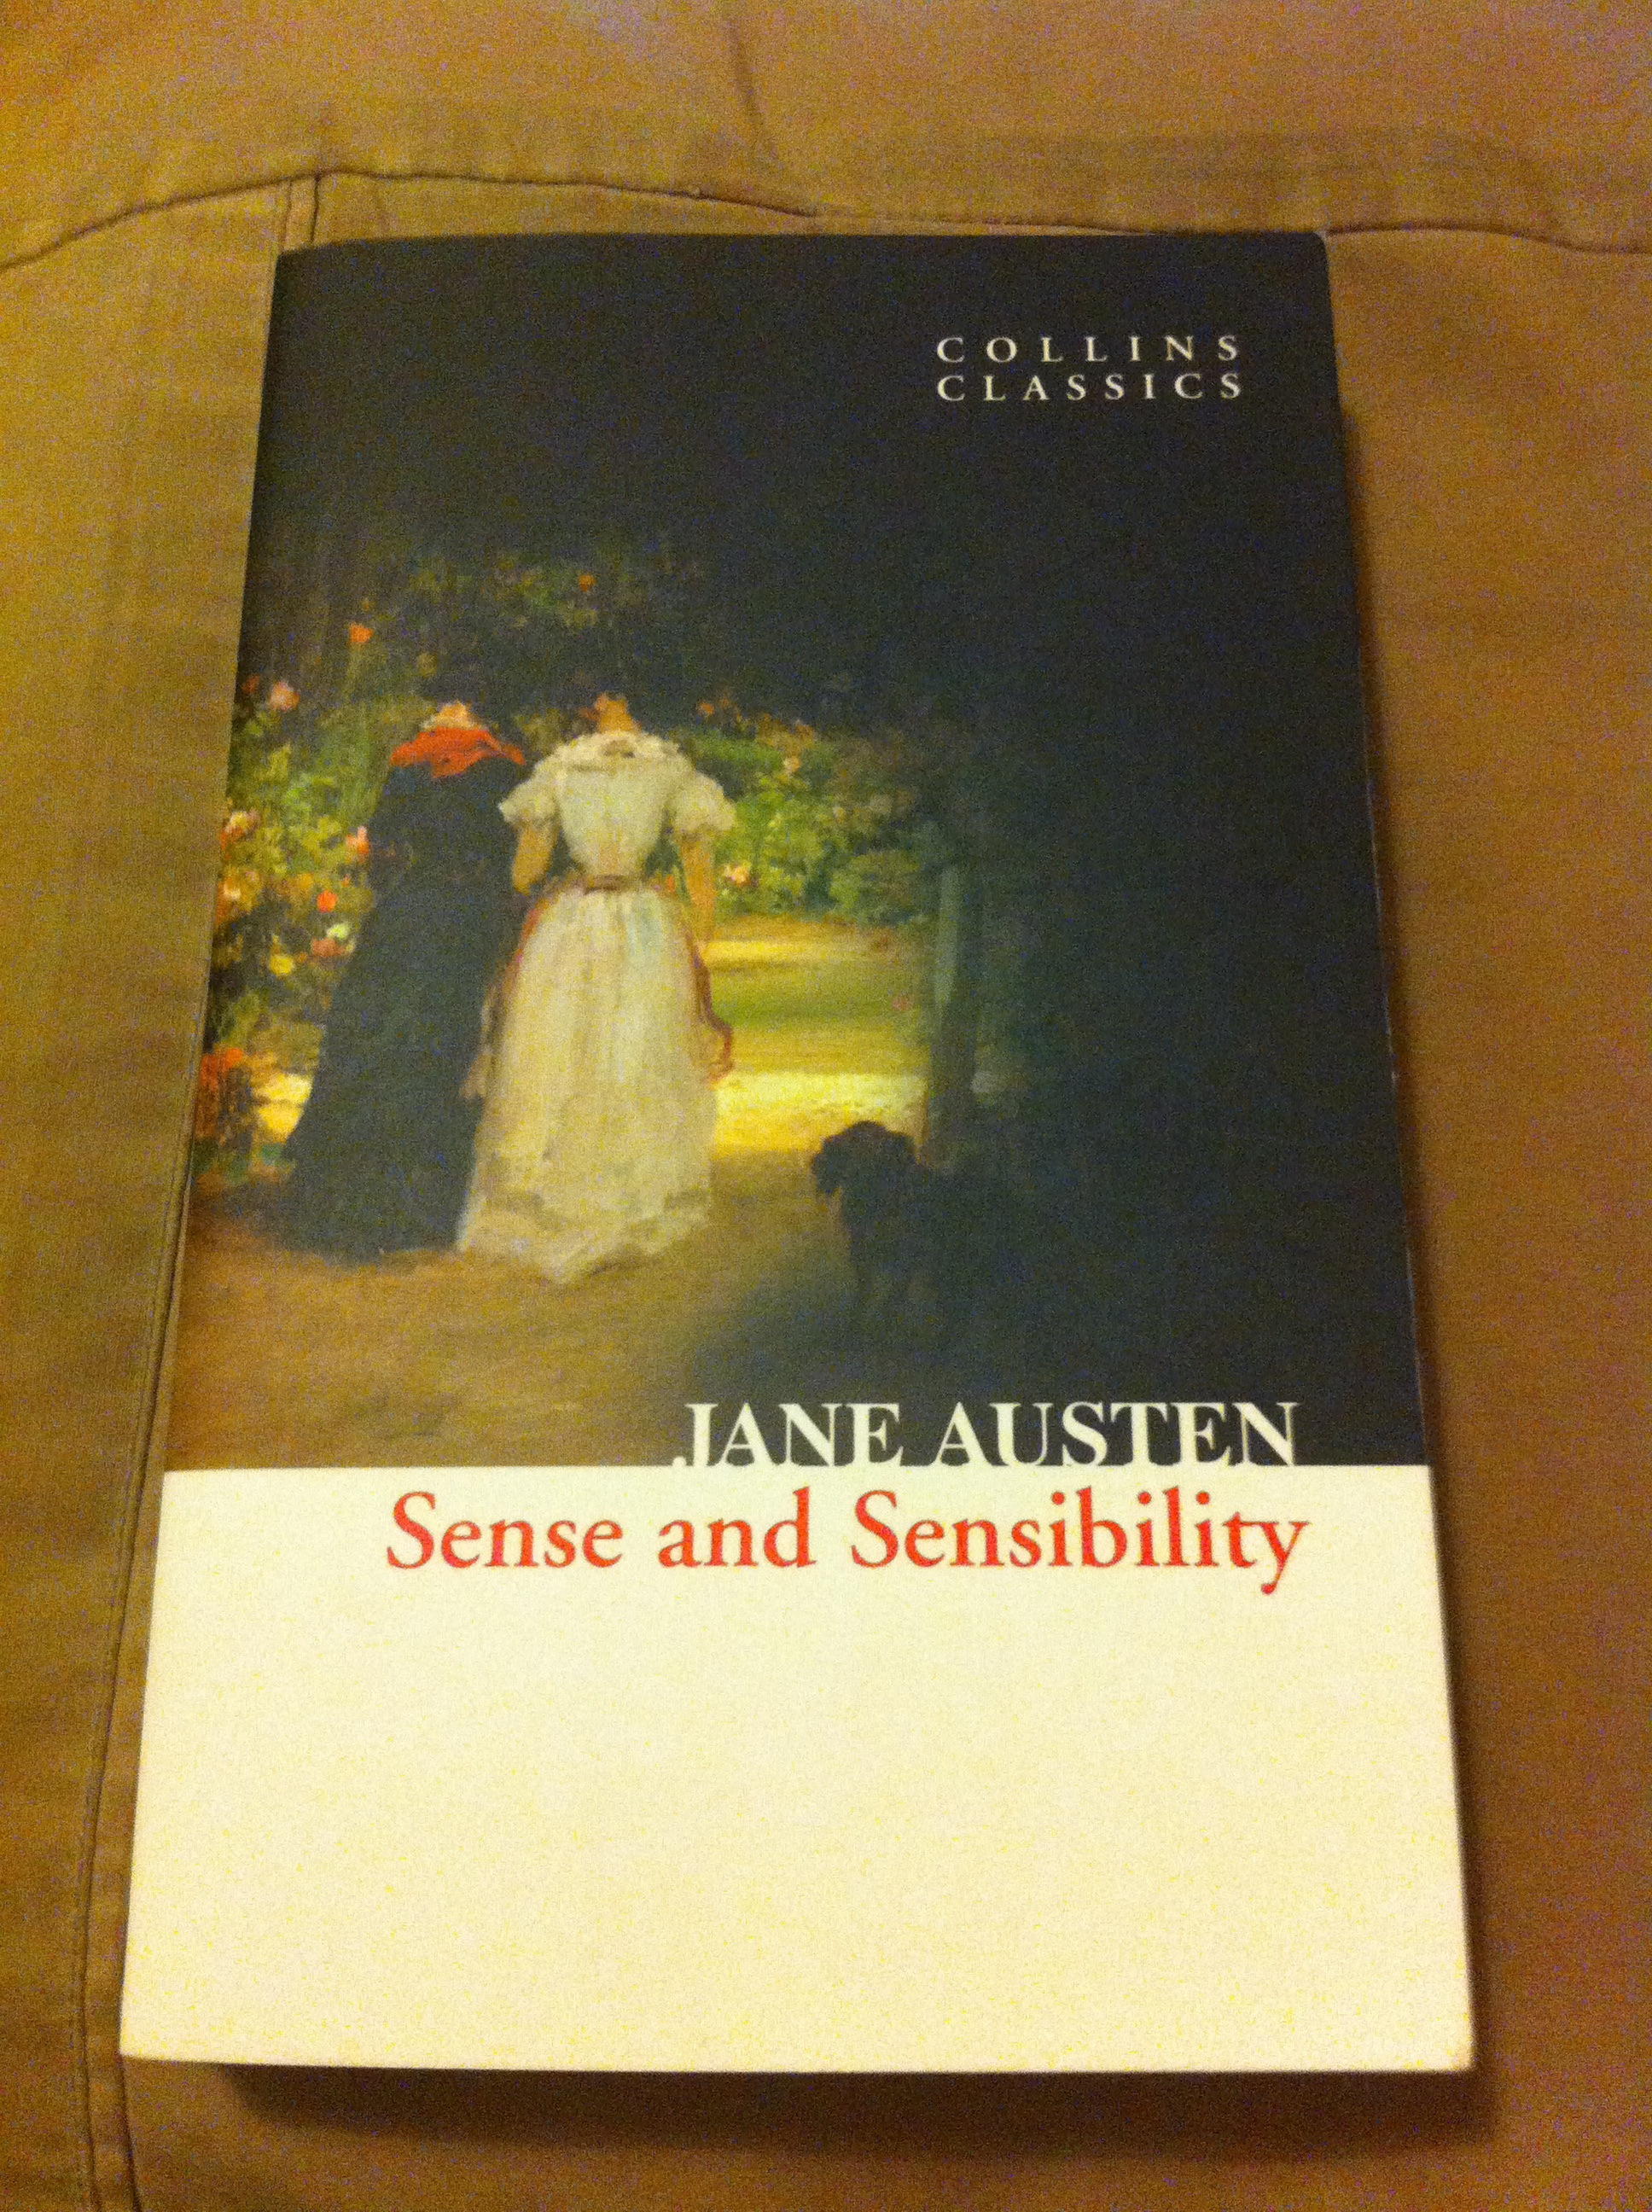 romantic and neoclassical philosophies in jane austens sense and sensibility The regency in the united kingdom of great britain and ireland was a period when king george iii was deemed unfit to rule and his son ruled as his proxy as prince regenton the death of george iii in 1820, the prince regent became george ivthe term regency (or regency era) can refer to various stretches of time some are longer than the decade of the formal regency which lasted from 1811–1820.